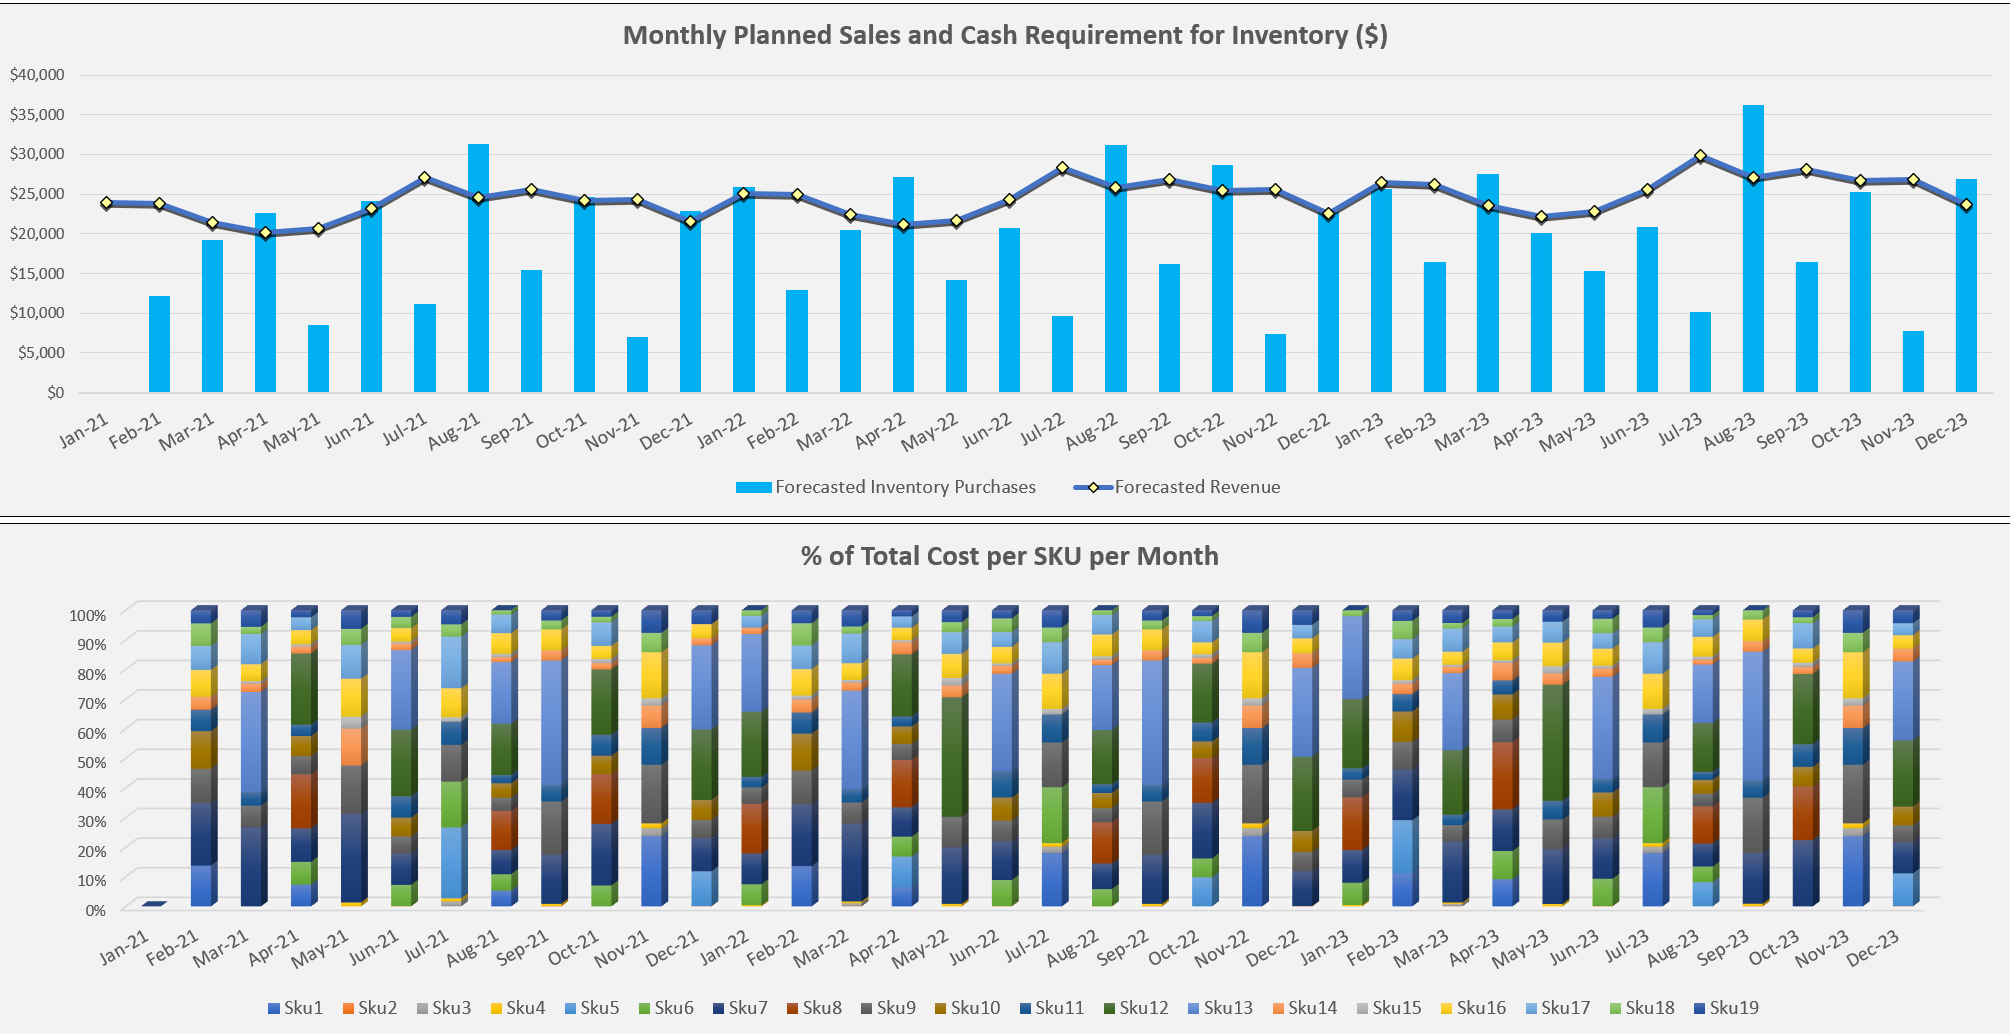 Inventory Restocking and Cash Requirement Forecast: Up to 36 Months